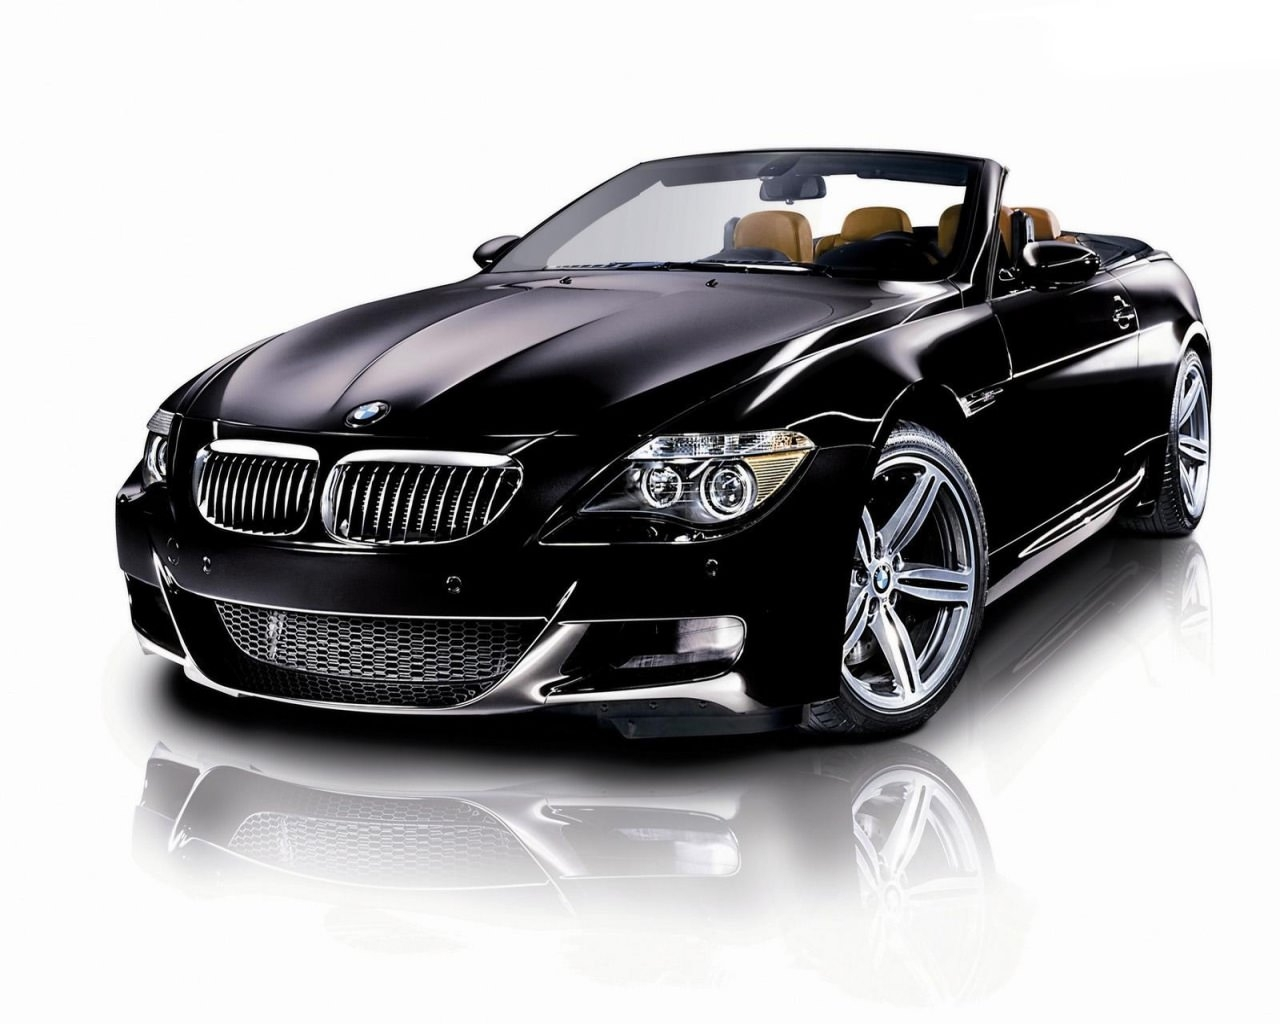 hdbmw-cars-wallpapers